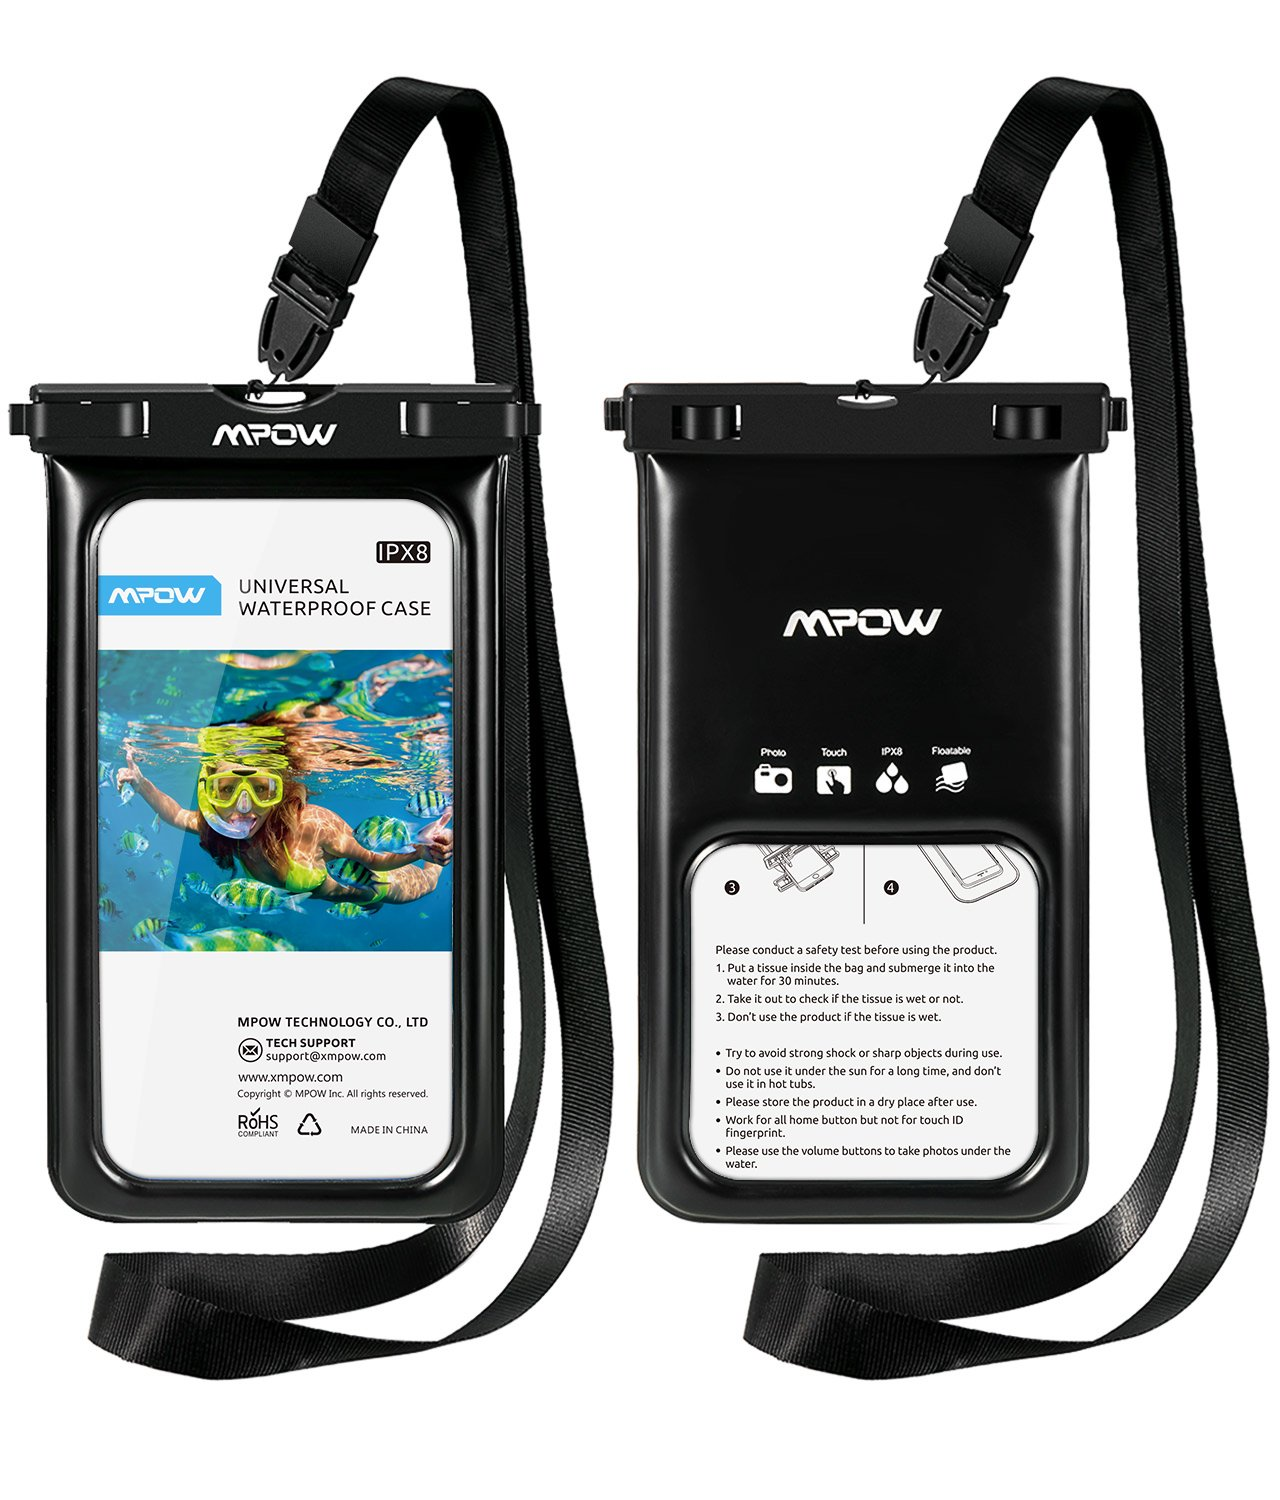 separation shoes 44922 d1fdc Shoptagr | Waterproof Case, Mpow Floating Dry Bag Cellphone Pouch ...